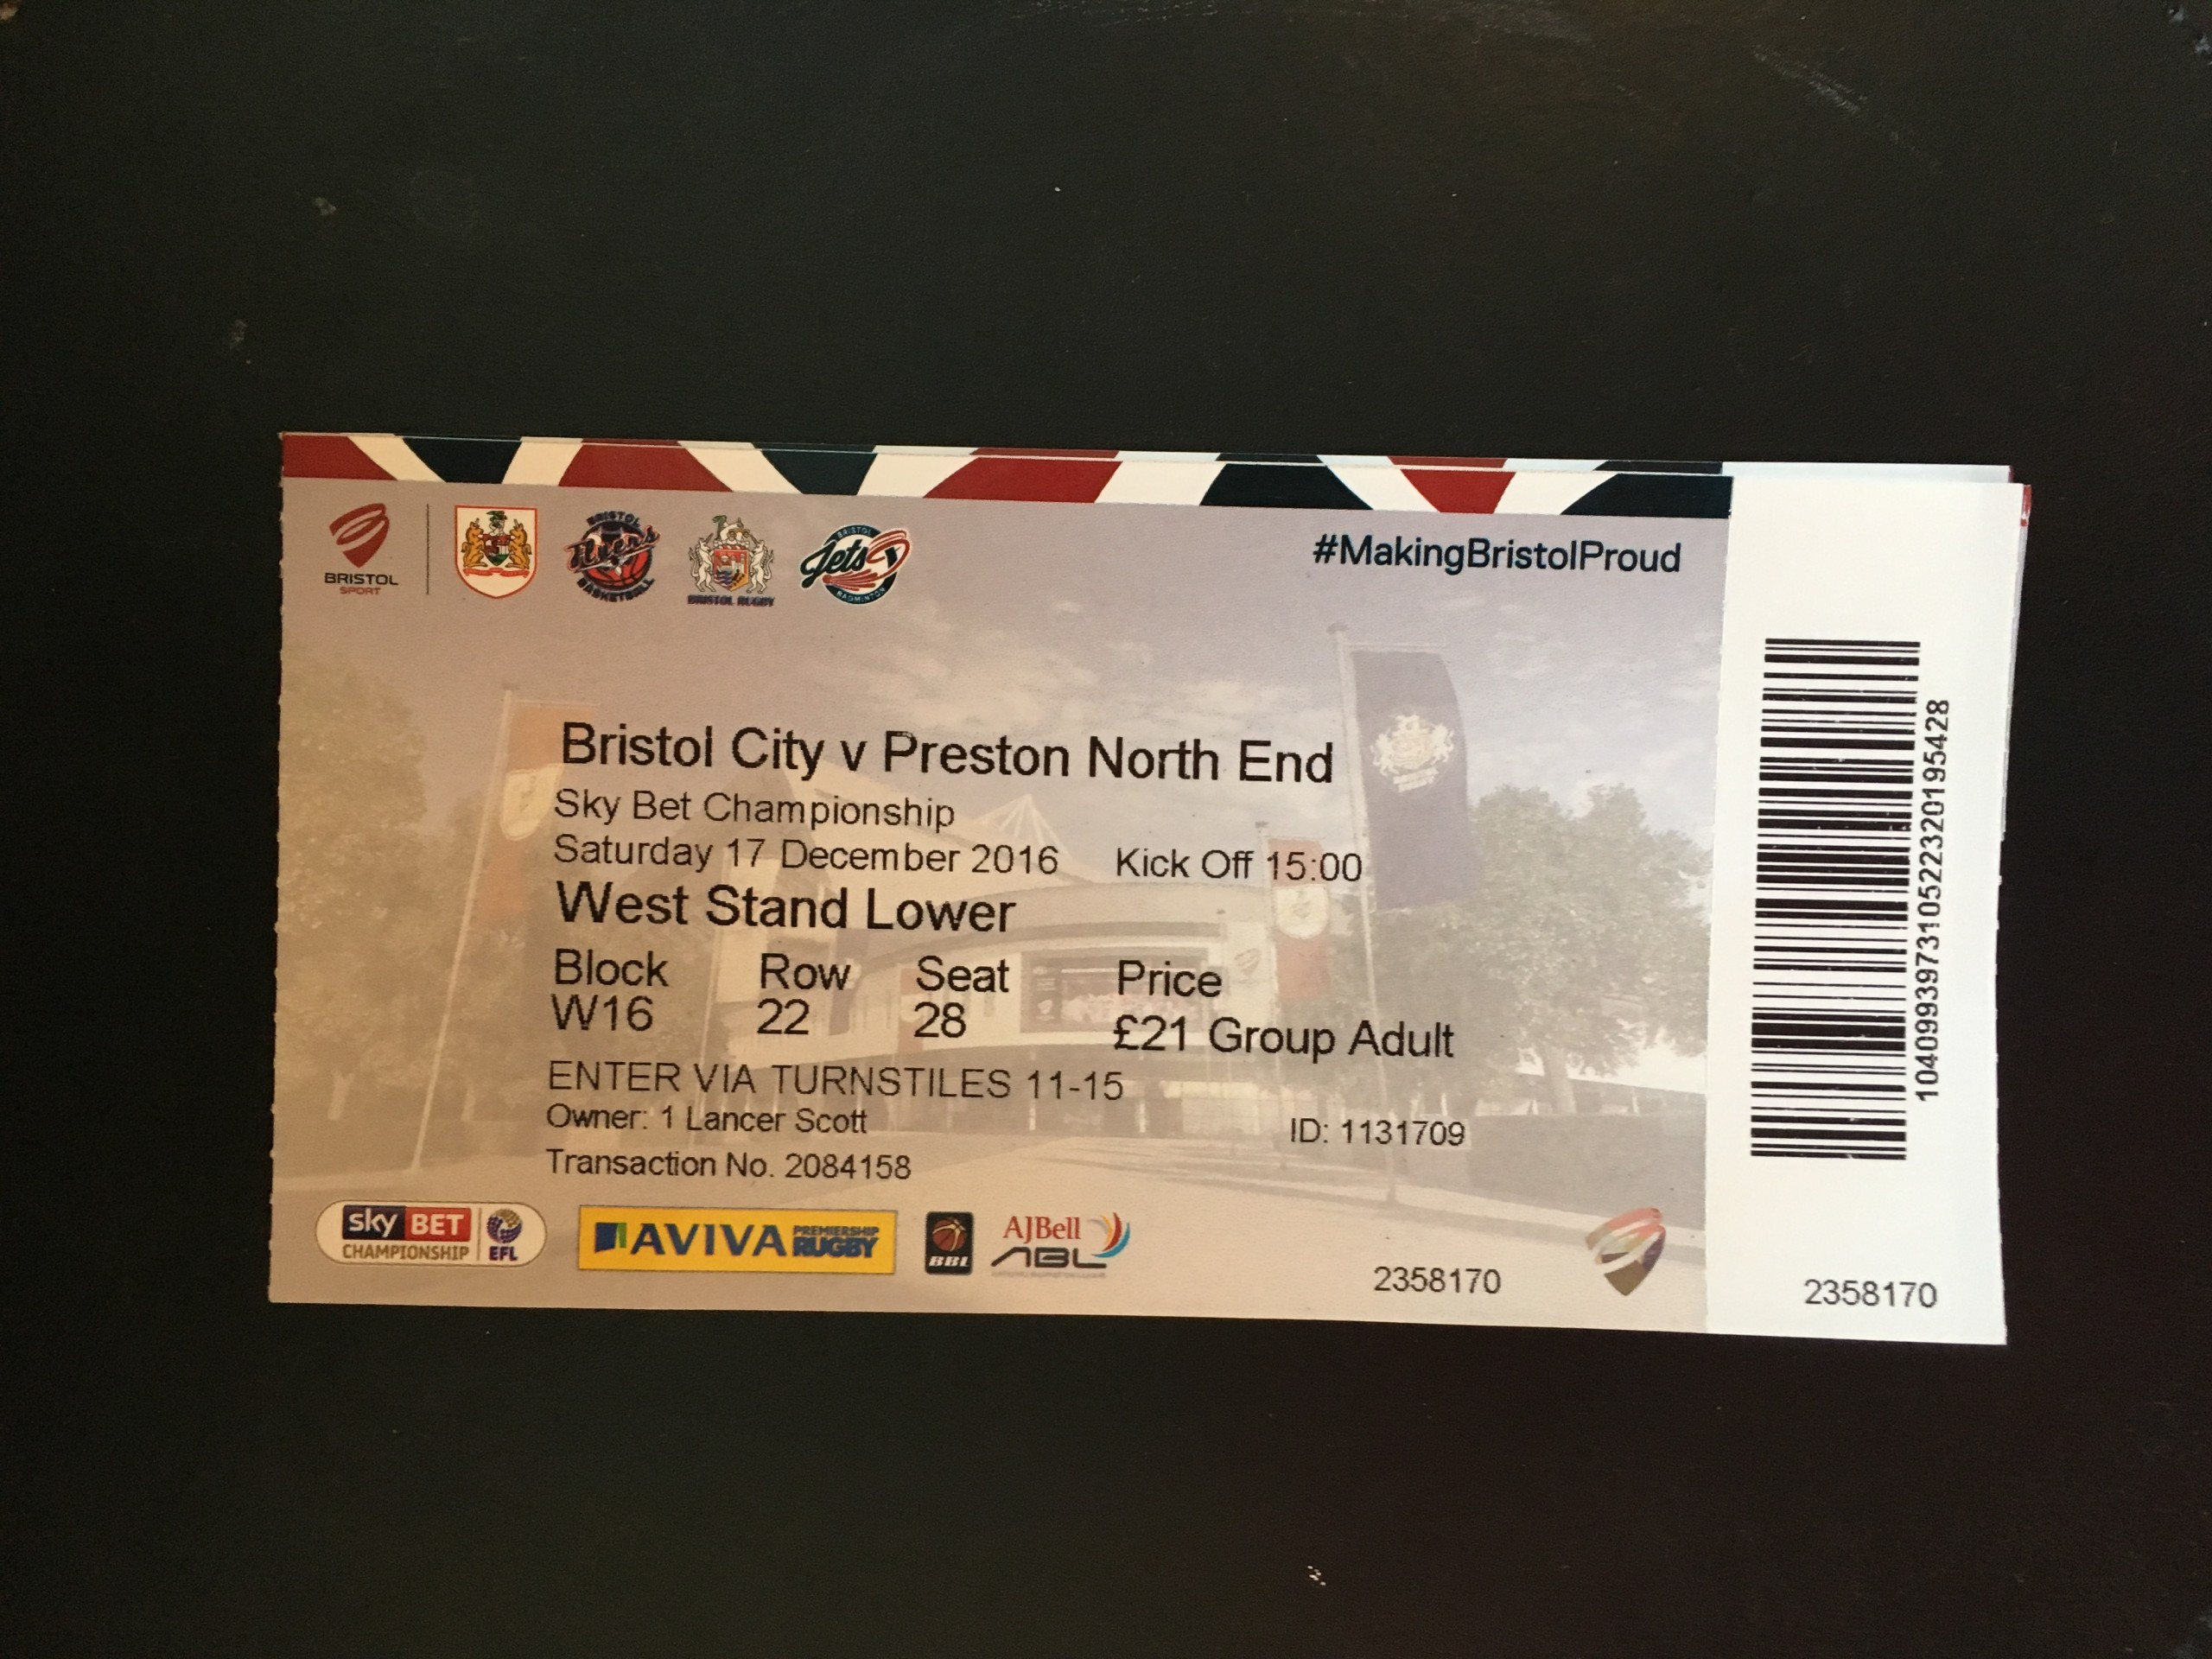 Bristol City v Preston North End 17-12-2016 Ticket